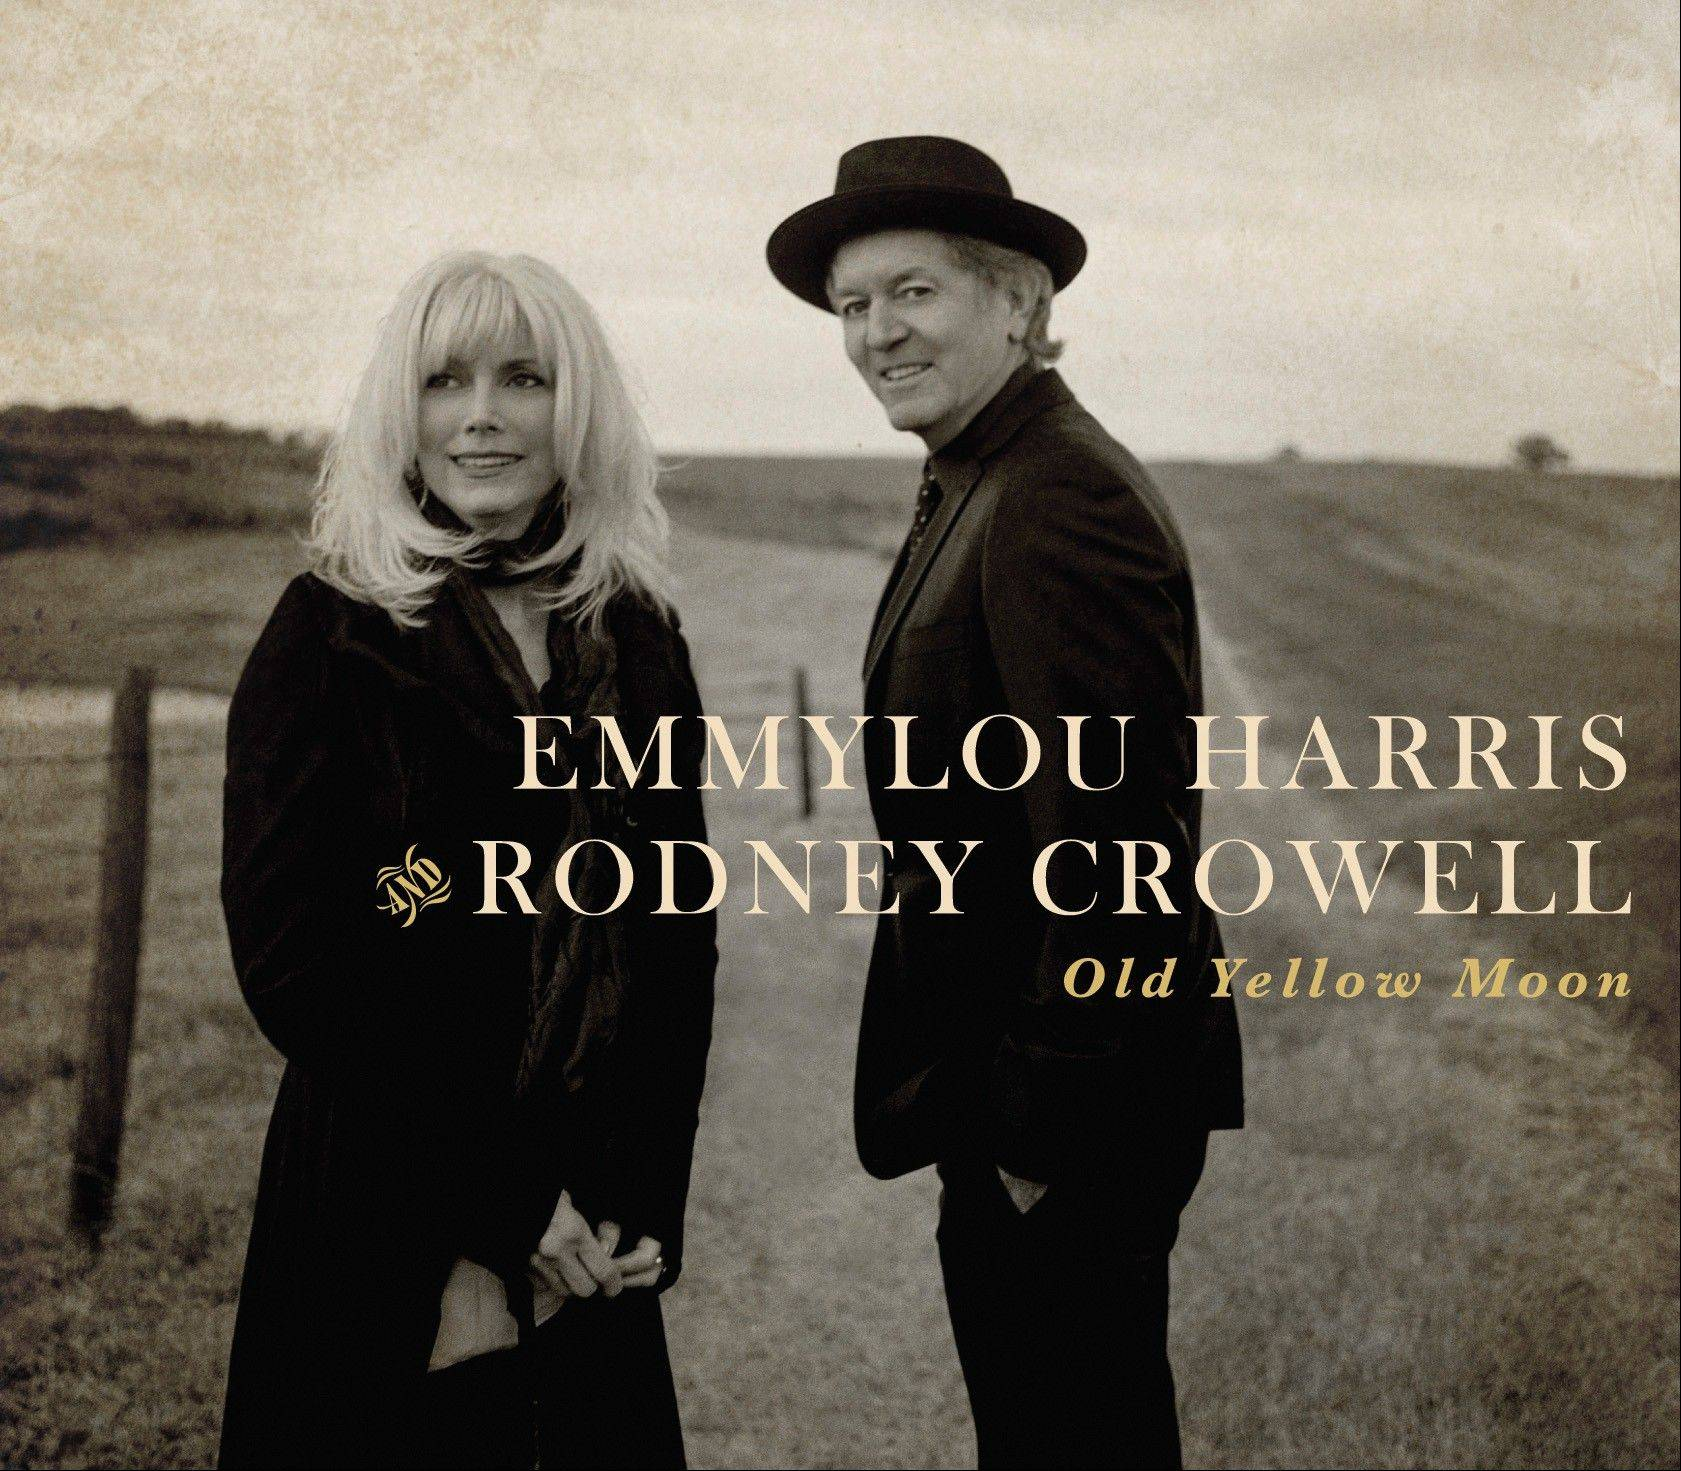 """Old Yellow Moon"" by Emmylou Harris and Rodney Crowell"